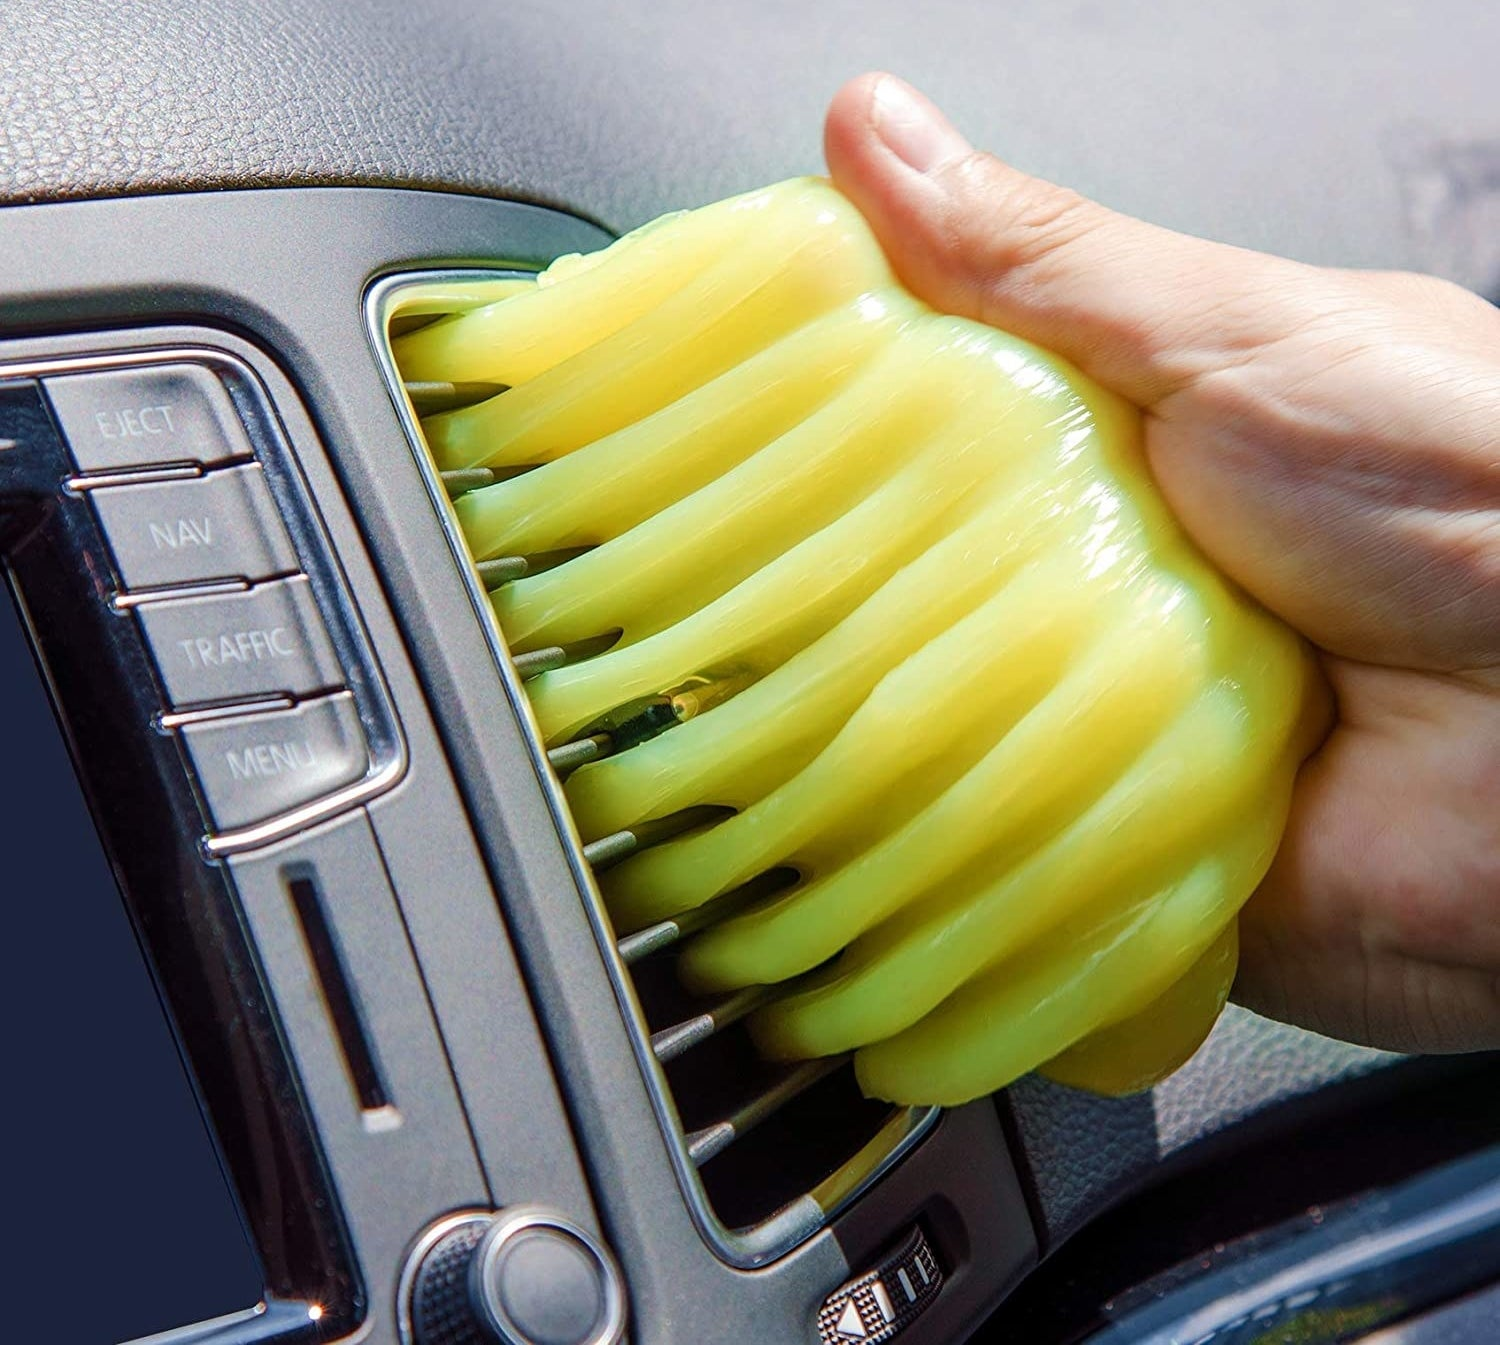 A hand pulling the gel out of a car vent